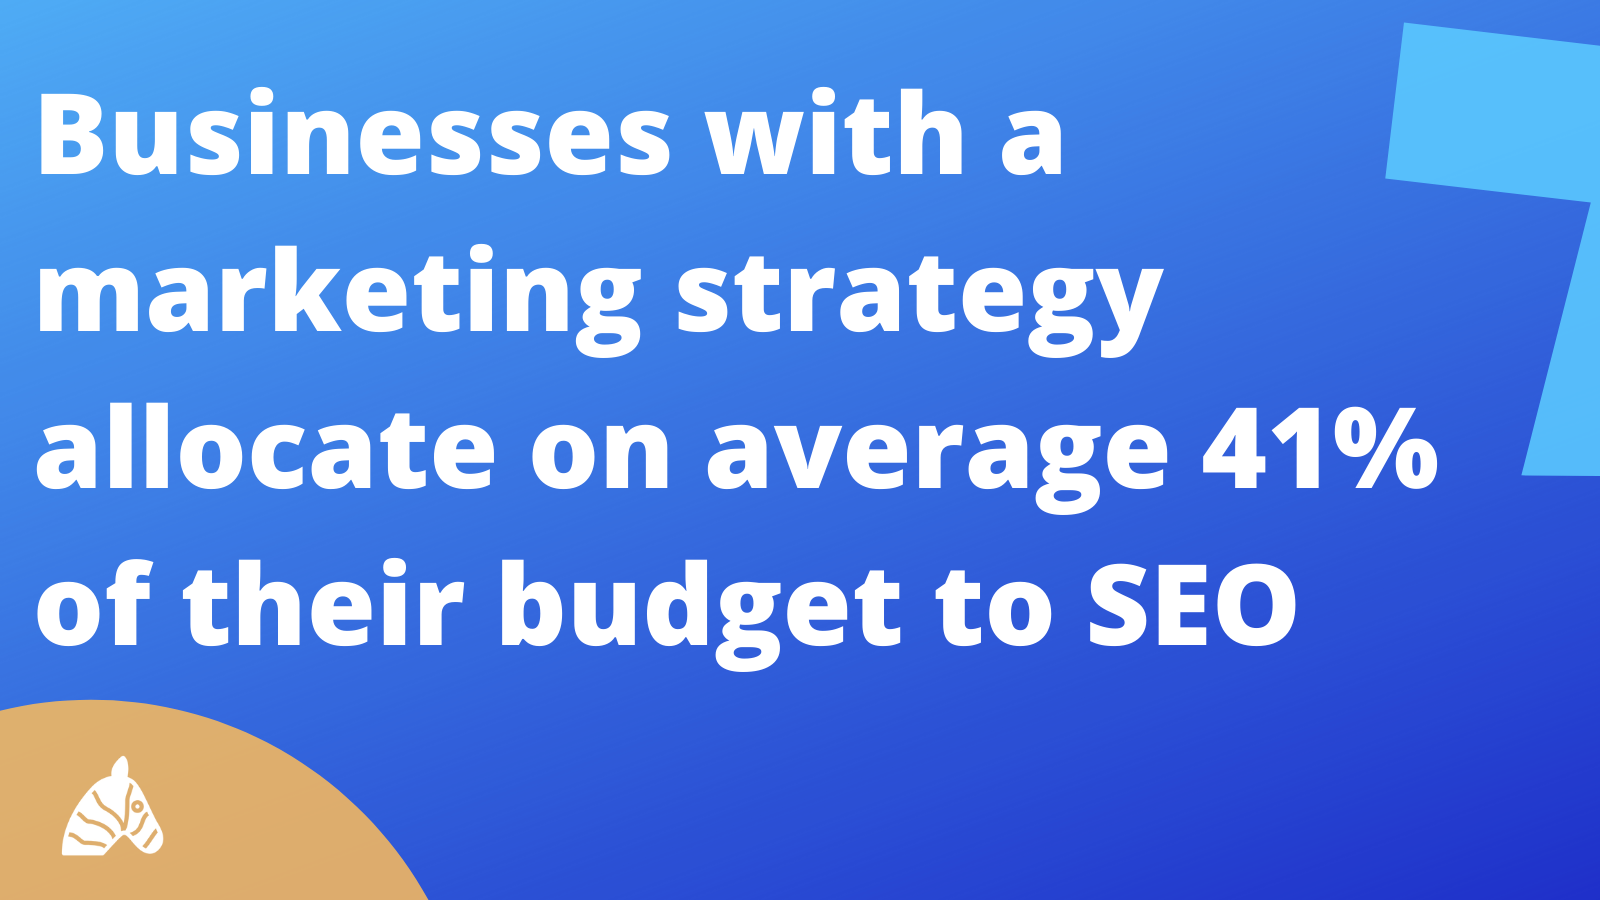 SEO Statistic about marketing budget allocated to SEO strategies